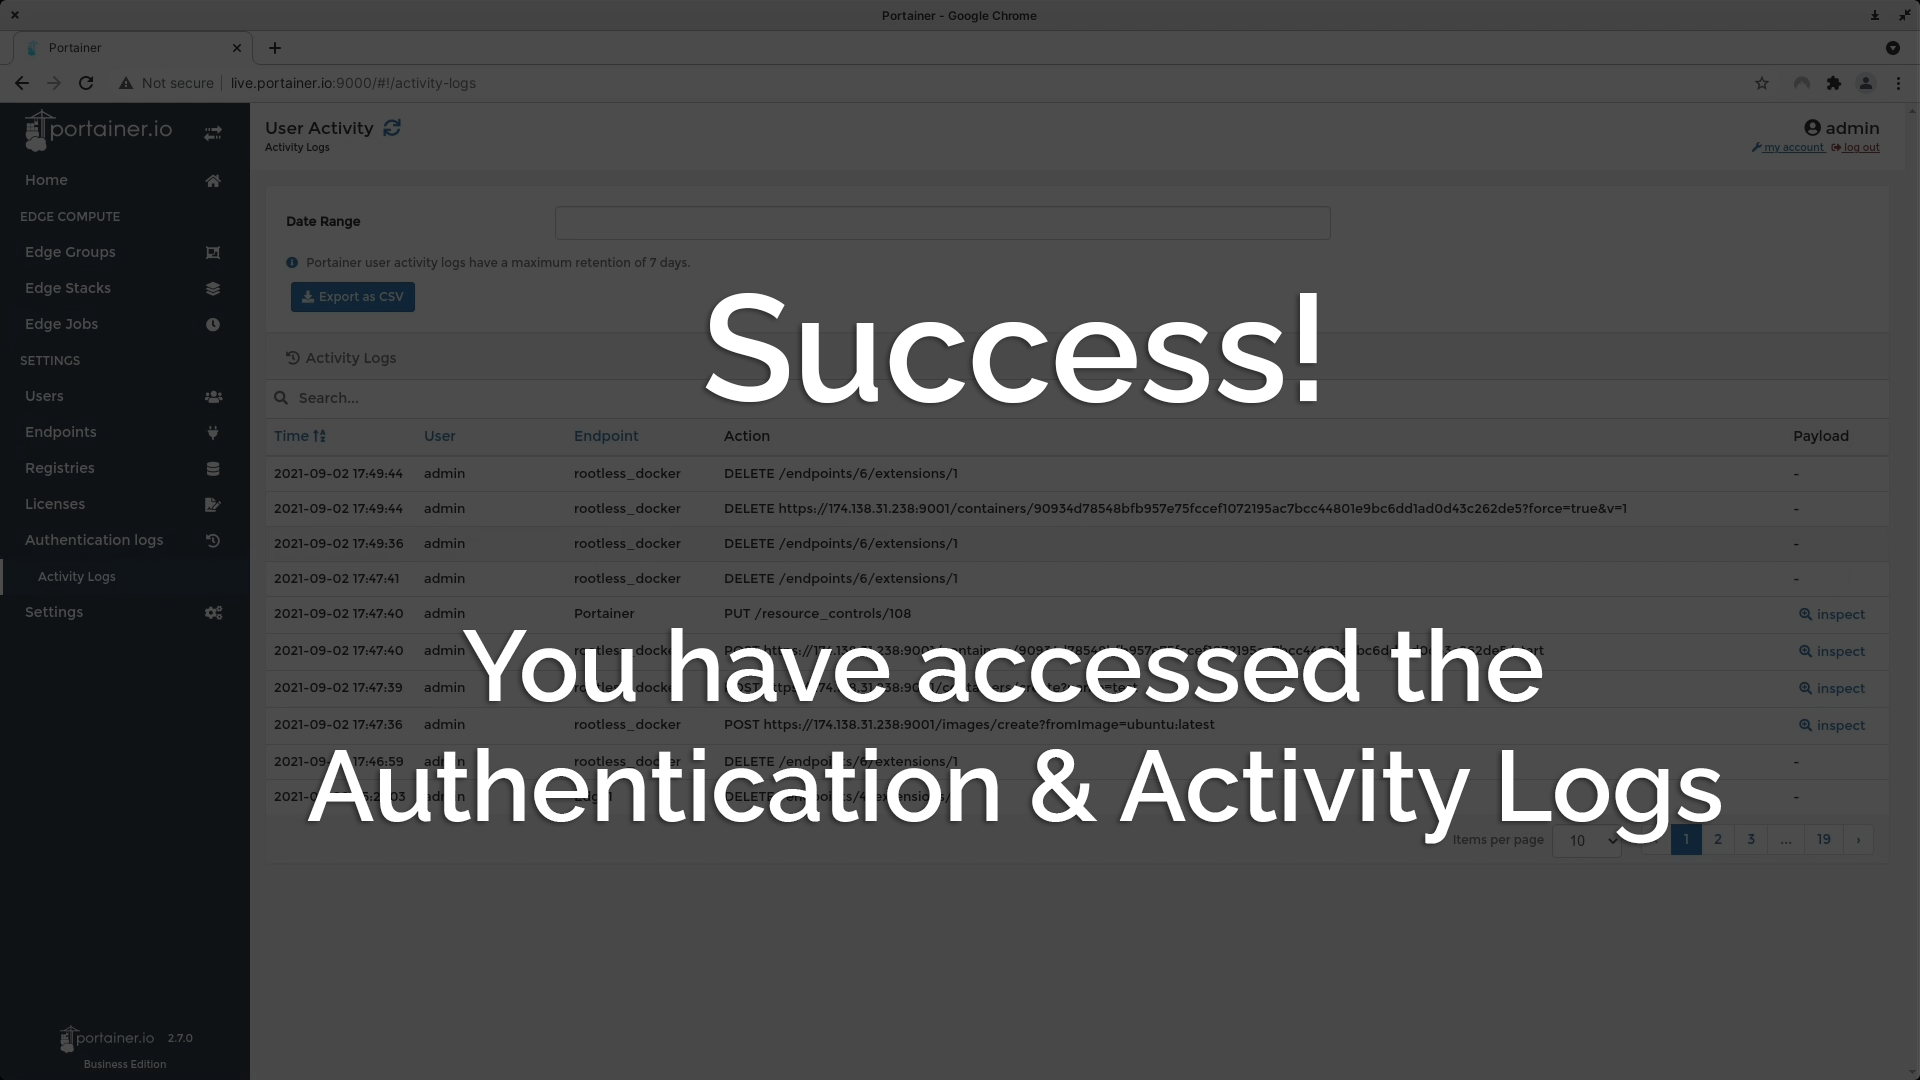 Success! You have accessed the Authentication & Activity logs.